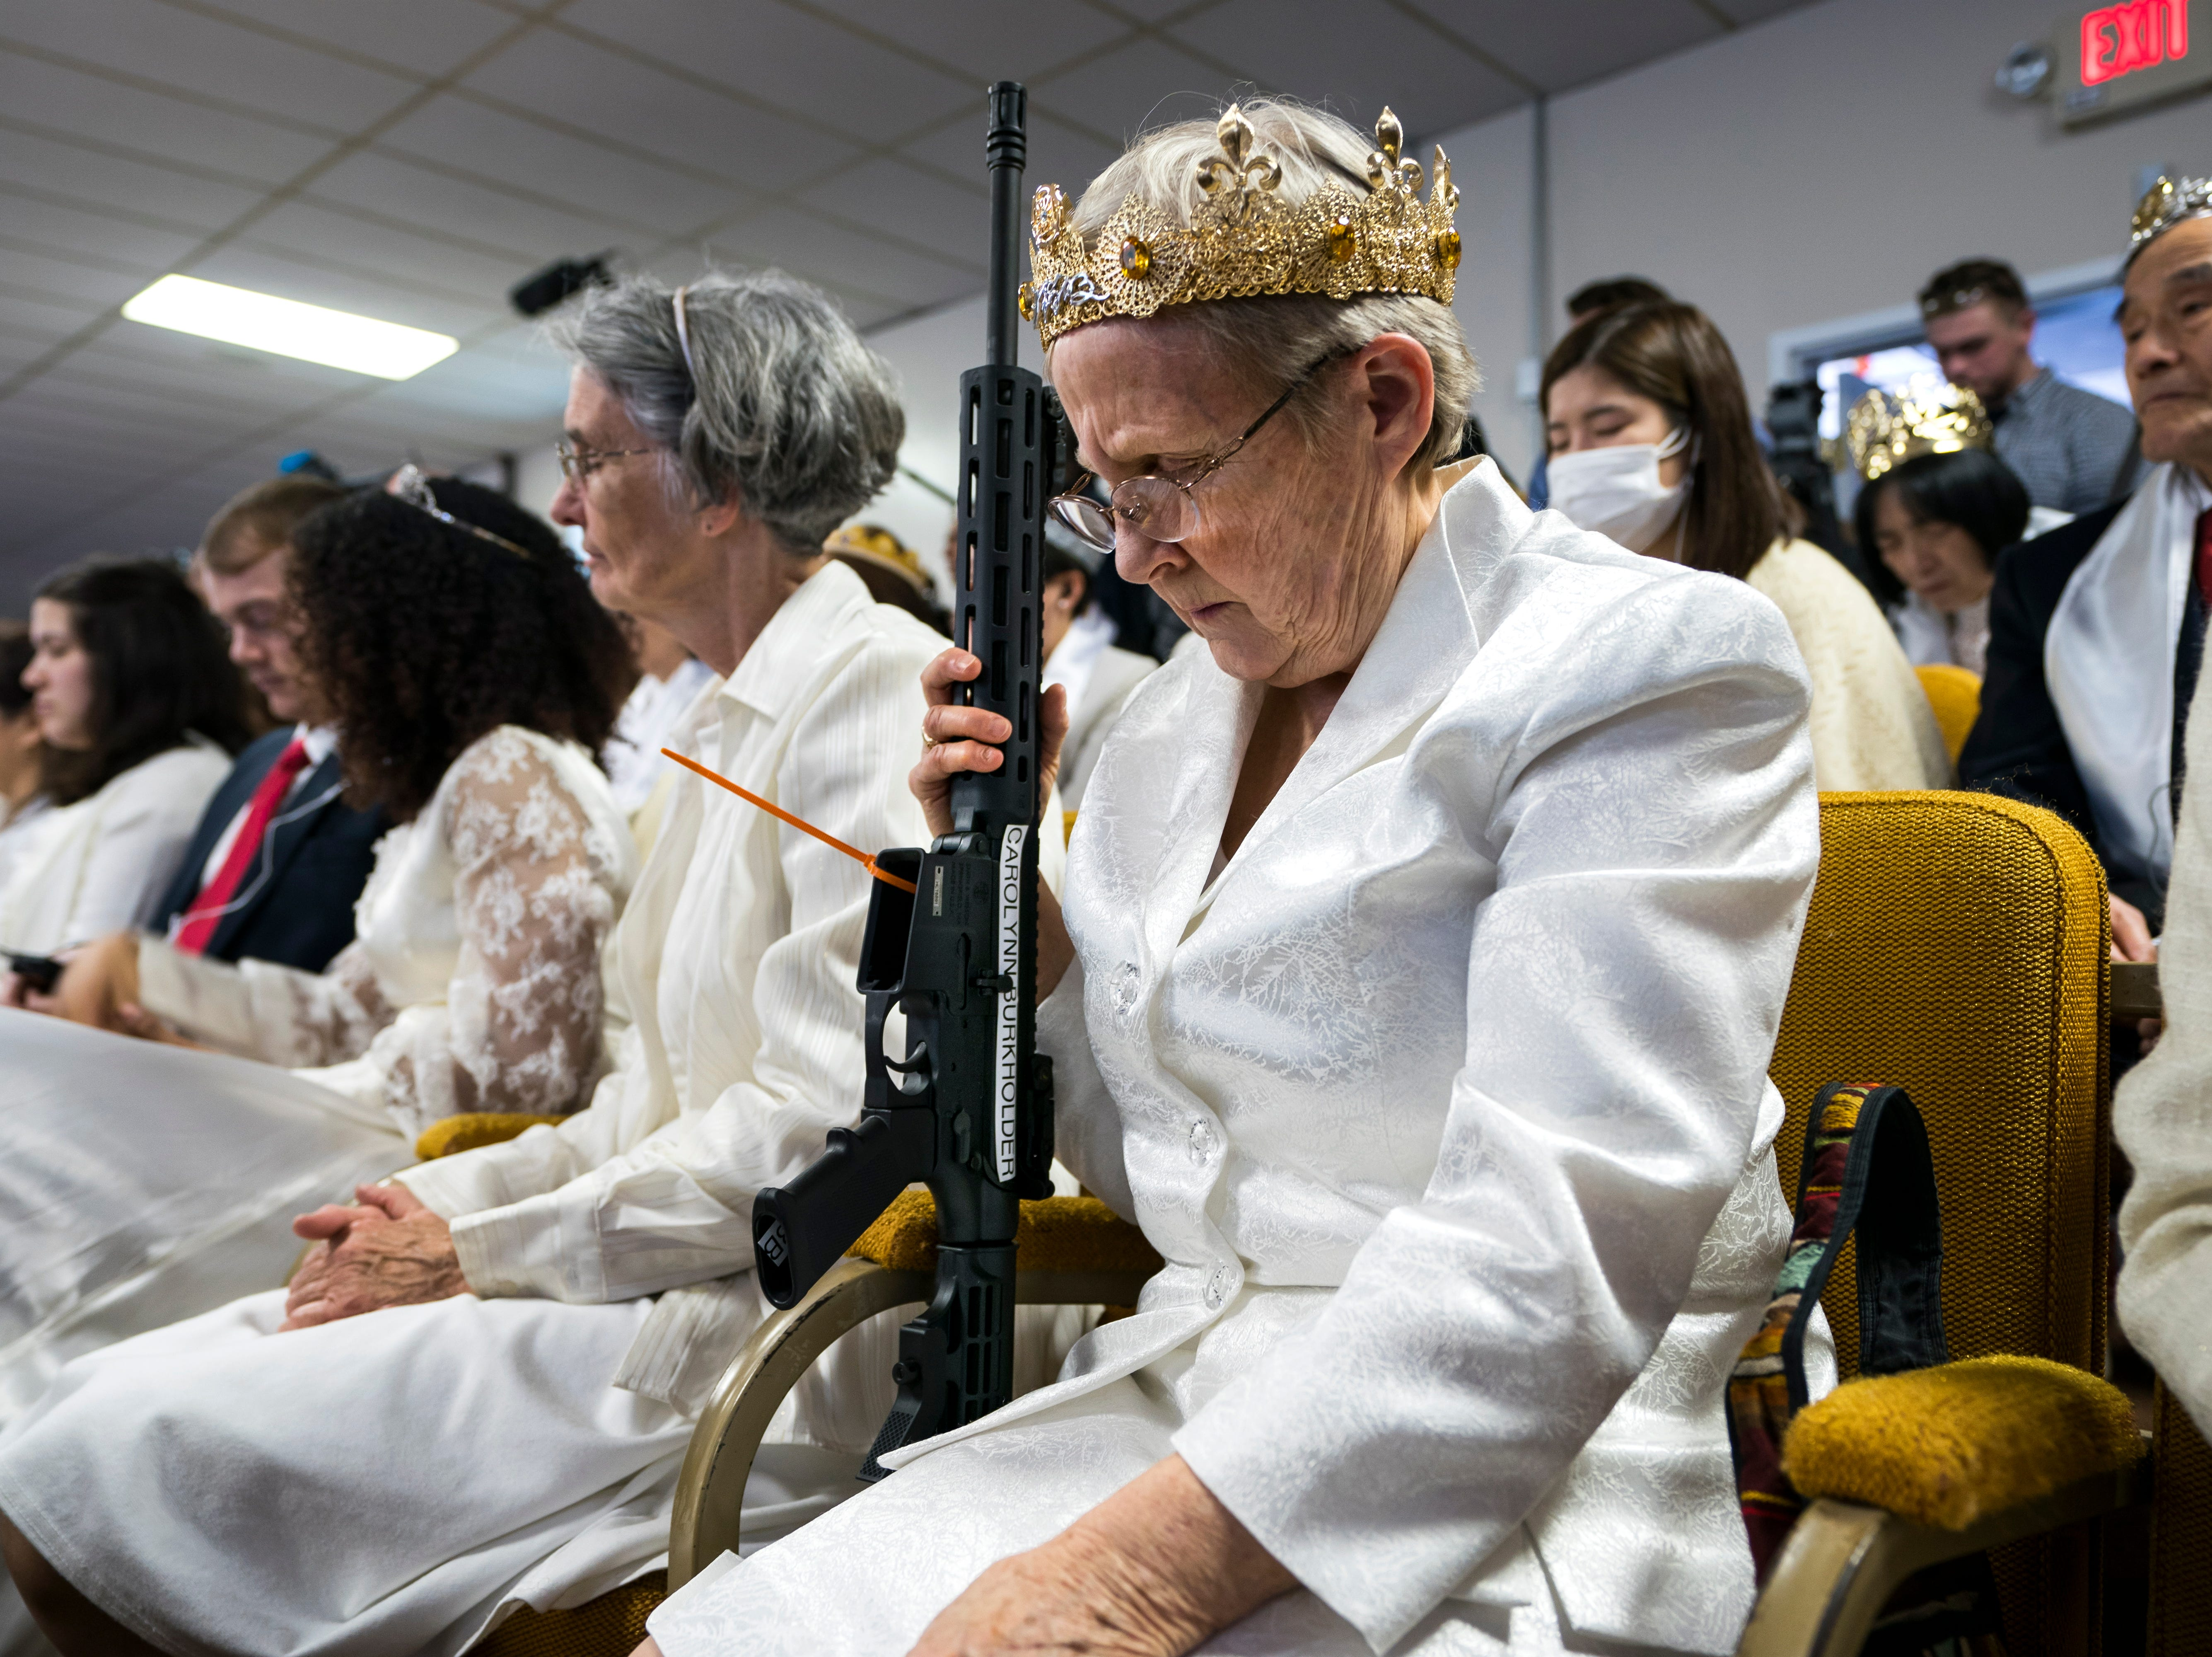 Feb. 28, 2018: A parishioner with the Sanctuary Church holds onto her AR-15, which churchgoers were encouraged to bring to services, during a blessing ceremony to rededicate their marriages, in Newfoundland, Penn. The church, a breakaway from the Unification Church, believes guns are a symbol of the 'rod of iron' referenced in the Book of Revelations.